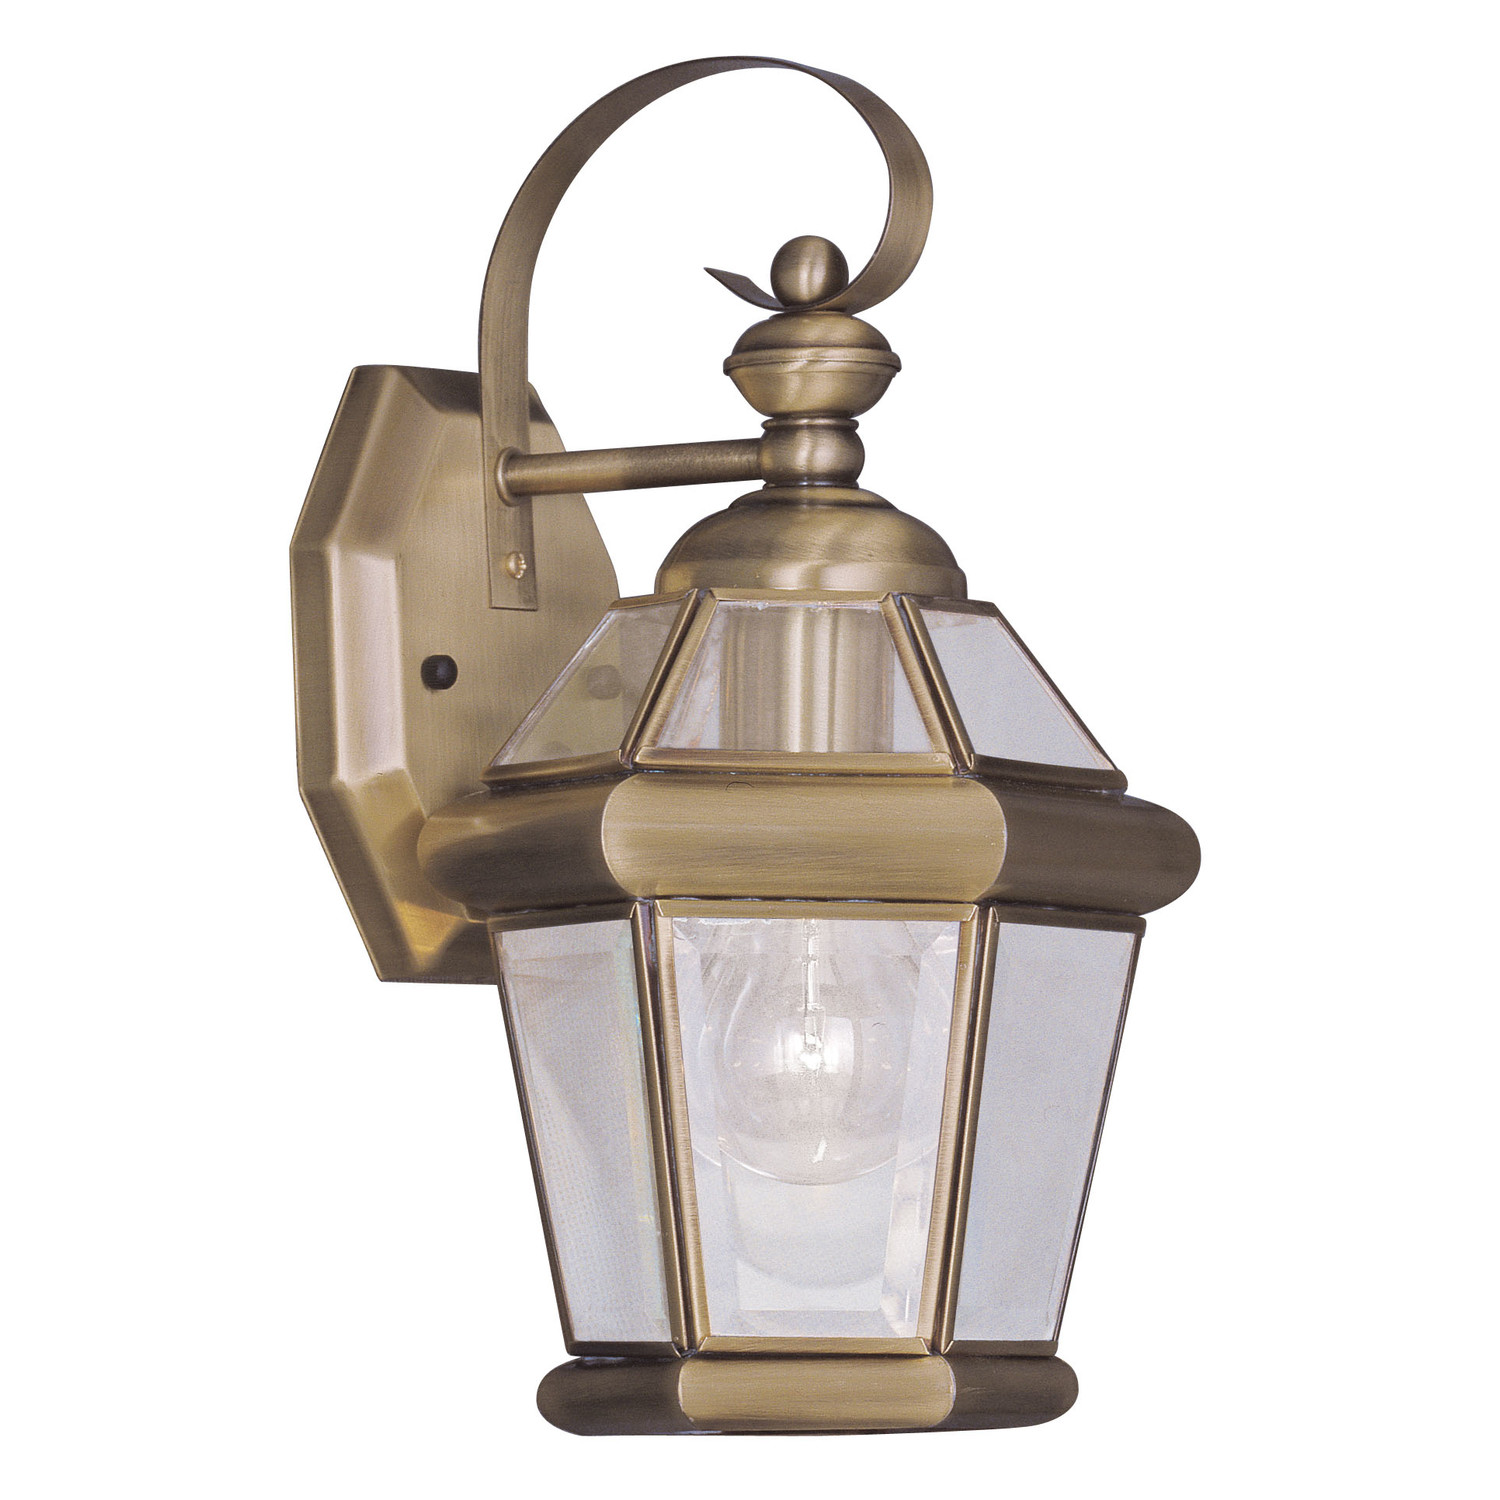 beautiful Livex Lighting Georgetown Outdoor Wall Lantern for outdoor lighting ideas